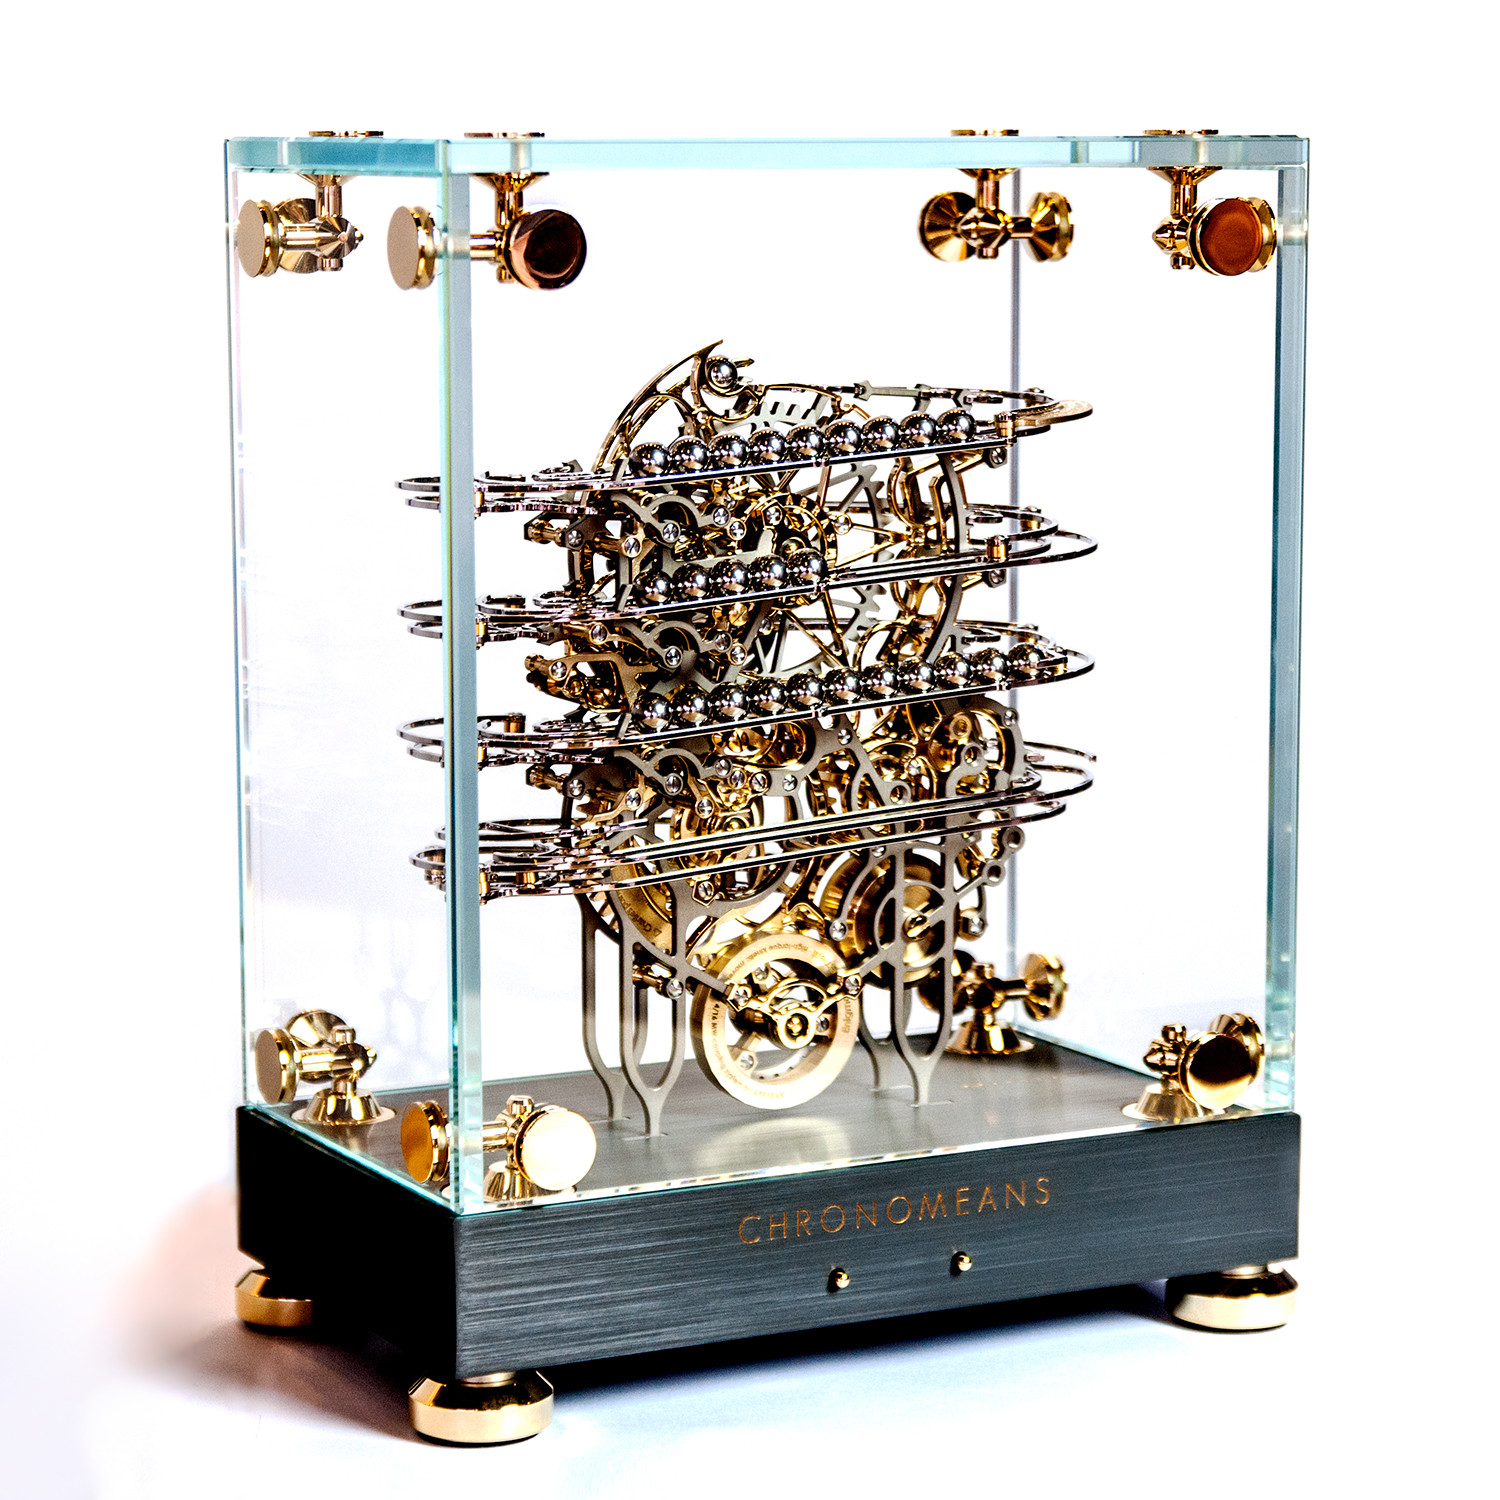 Chronomeans Rolling Ball Clock Shahrazad Limited